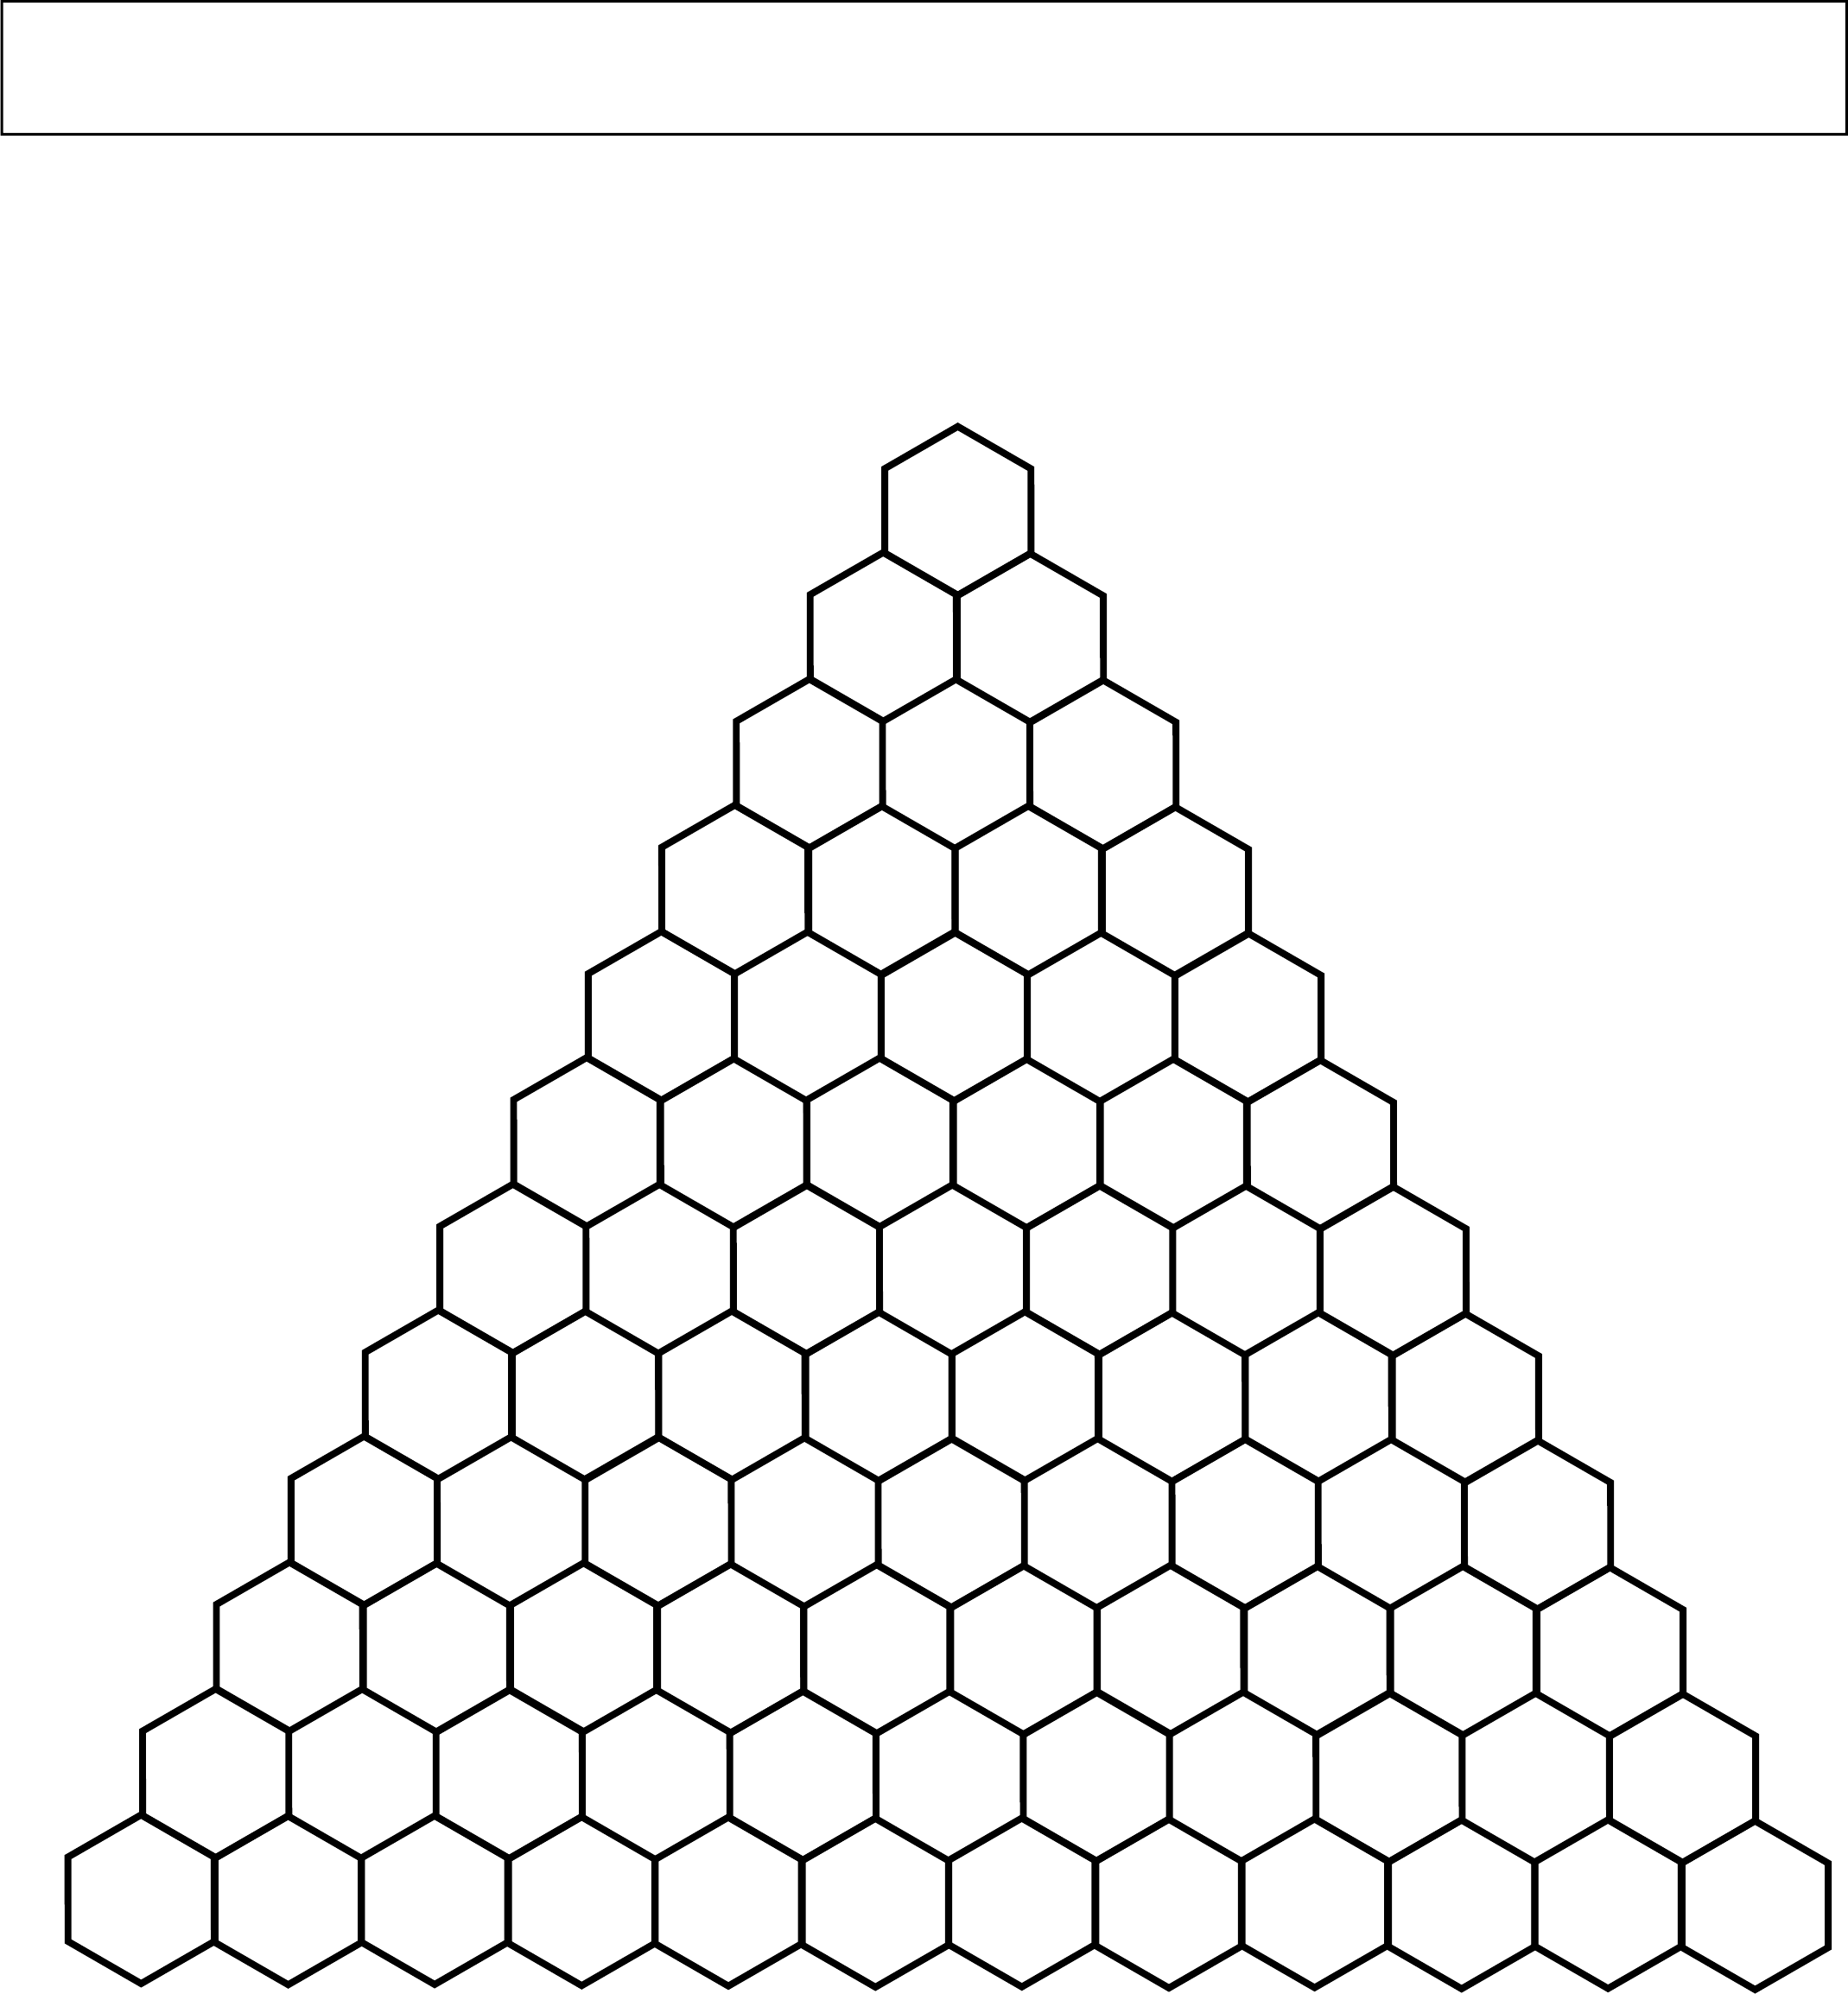 Blank Pascal's Triangle (All) Free Download